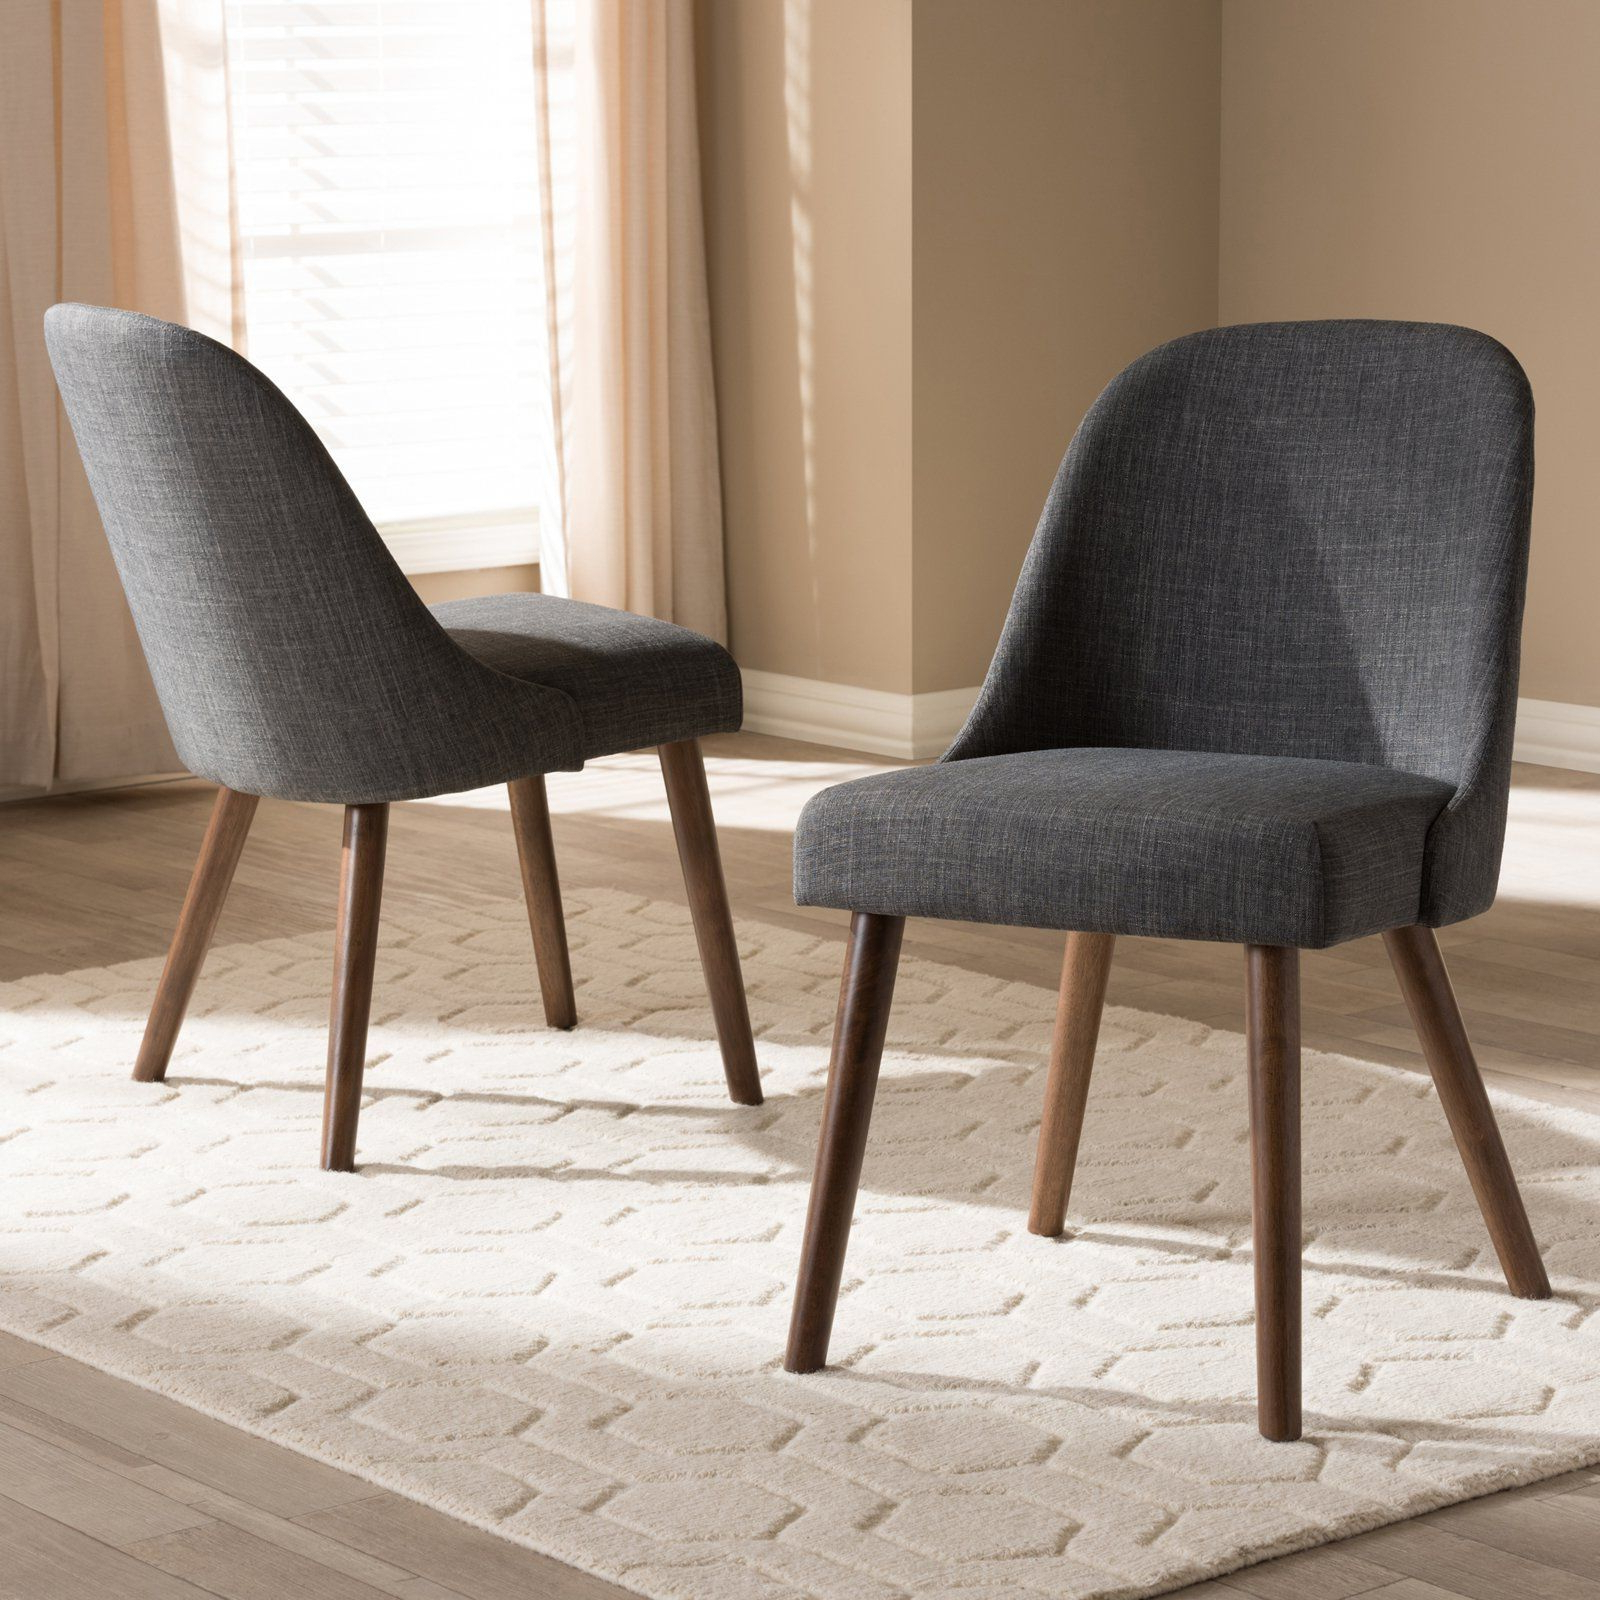 Trendy Carlton Wood Leg Upholstered Dining Chairs Intended For Baxton Studio Cody Mid Century Modern Fabric Upholstered (View 18 of 20)